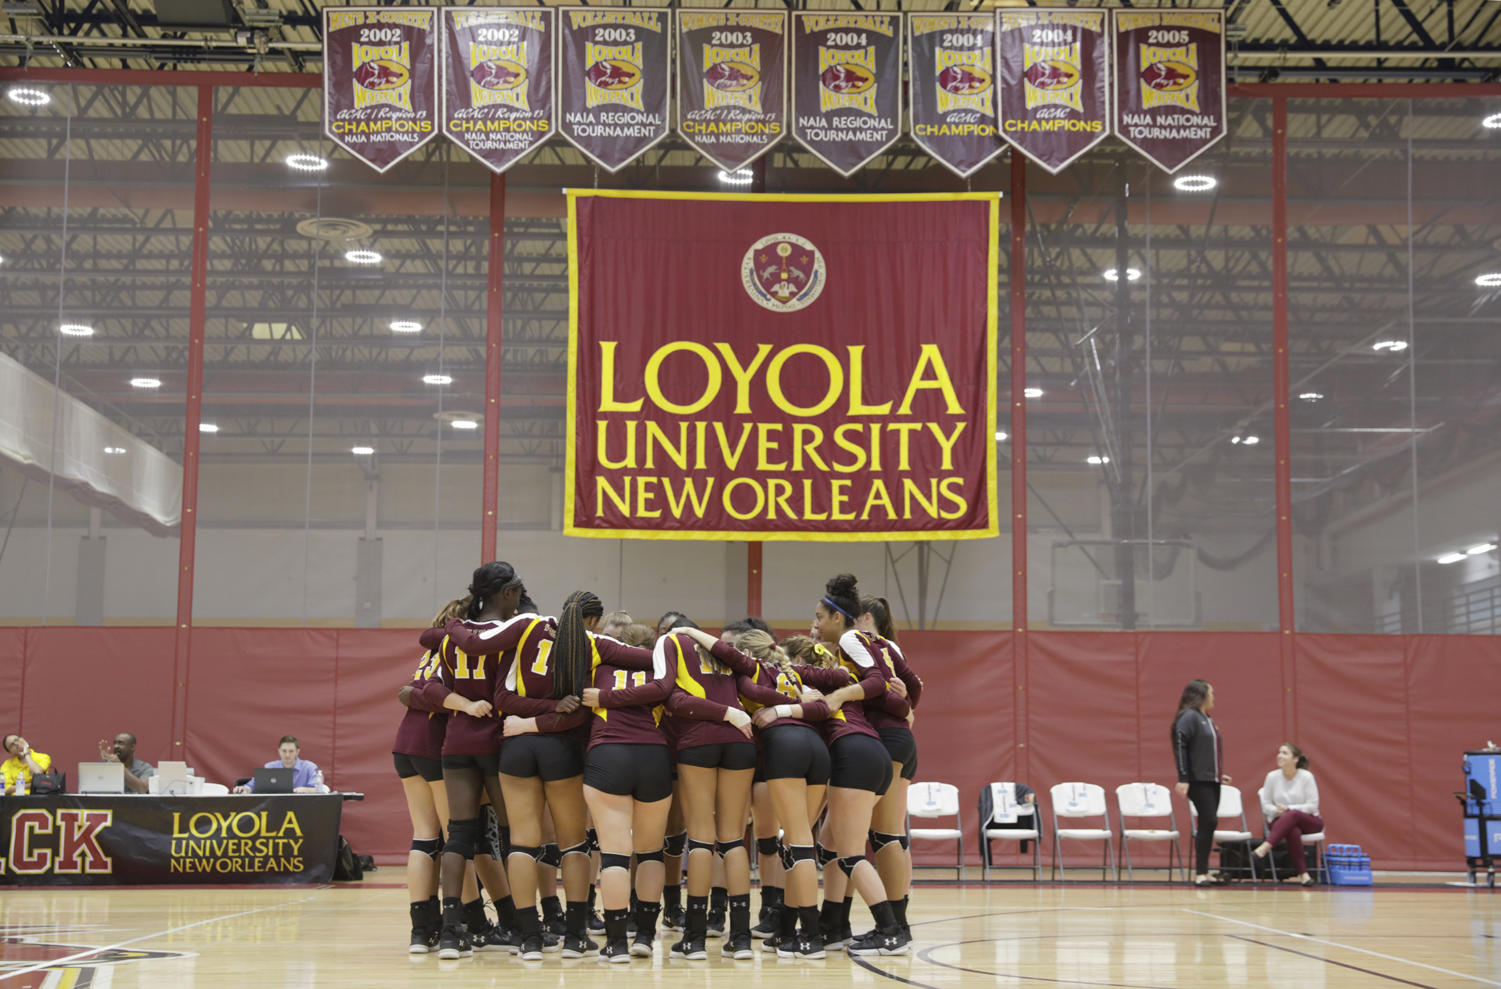 The Loyola's volleyball team huddles together at a home game. Photo credit: Cristian Orellana